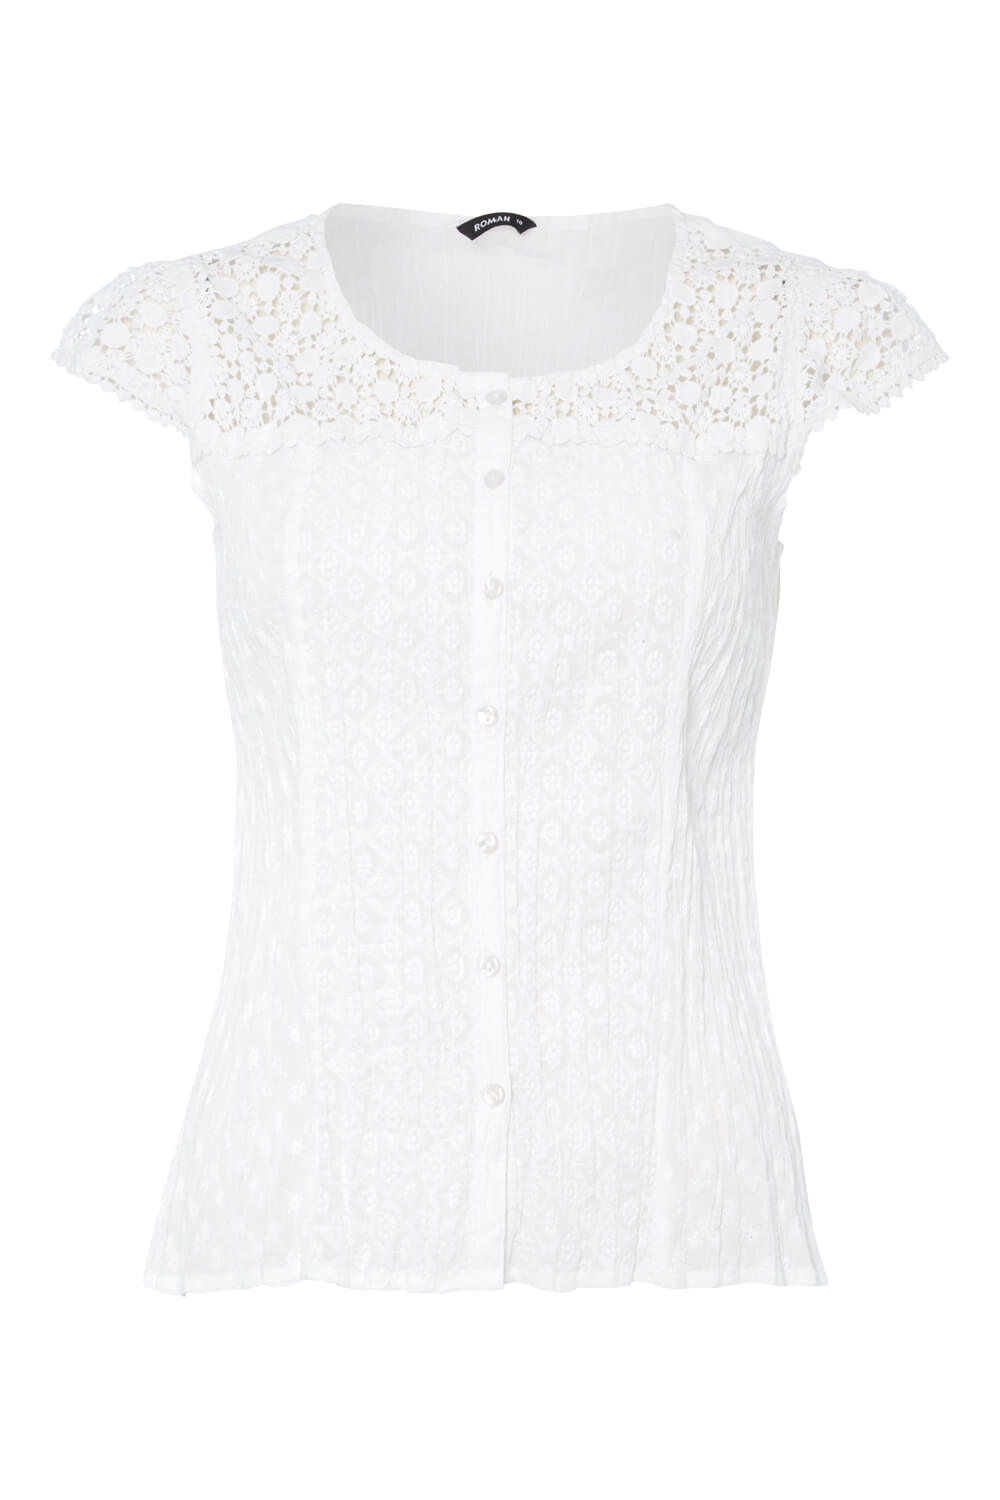 Lace-Yoke-Short-Sleeve-Button-Crinkle-Blouse-Ladies-Women-Roman-Originals thumbnail 17